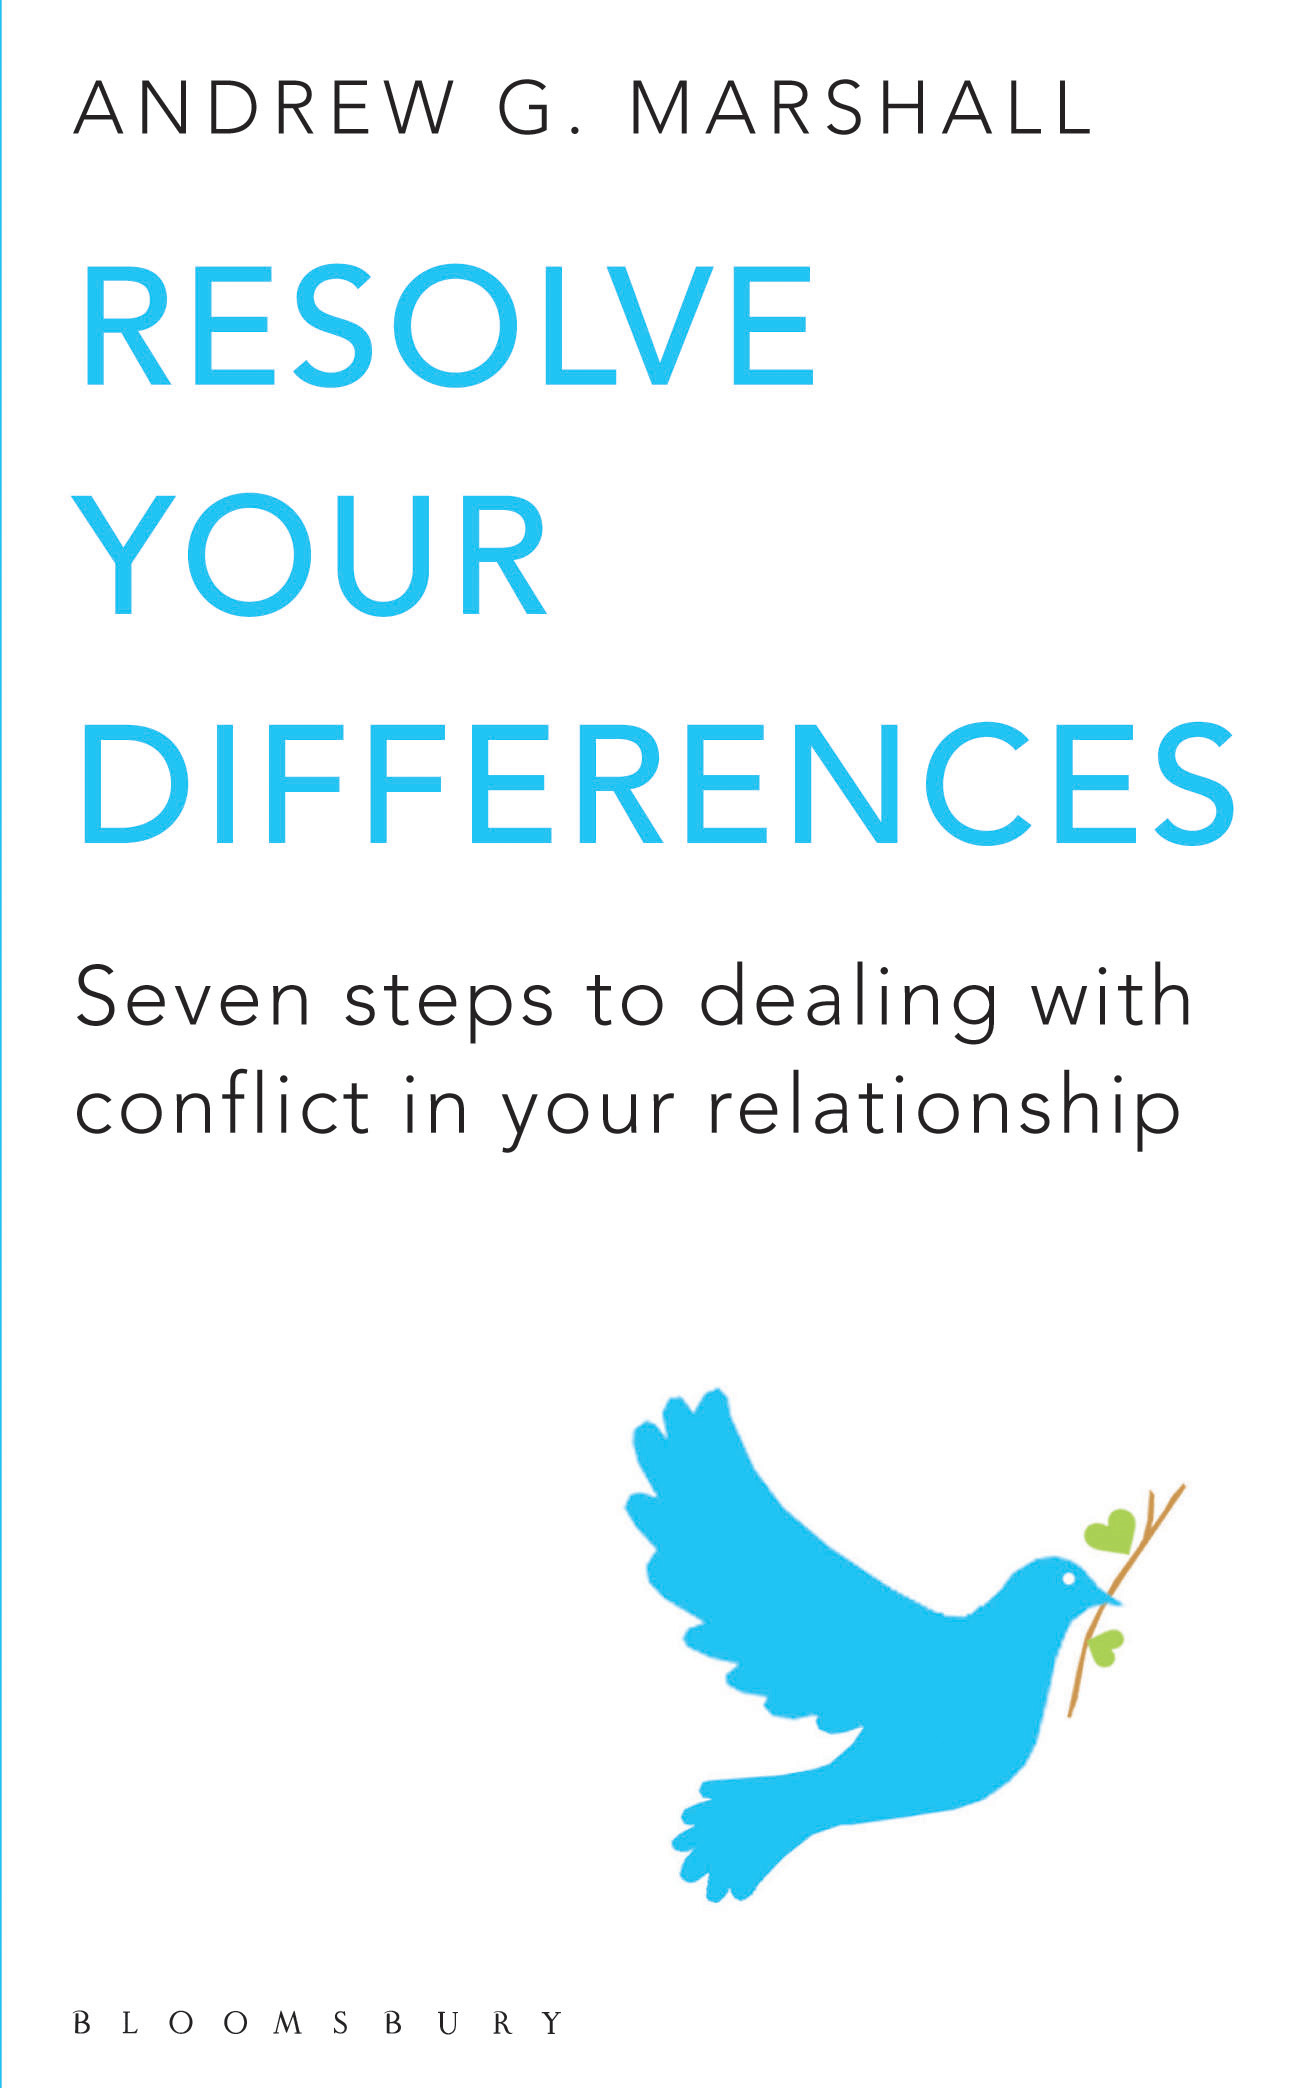 Resolve Your Differences Seven steps to coping with conflict in your relationship